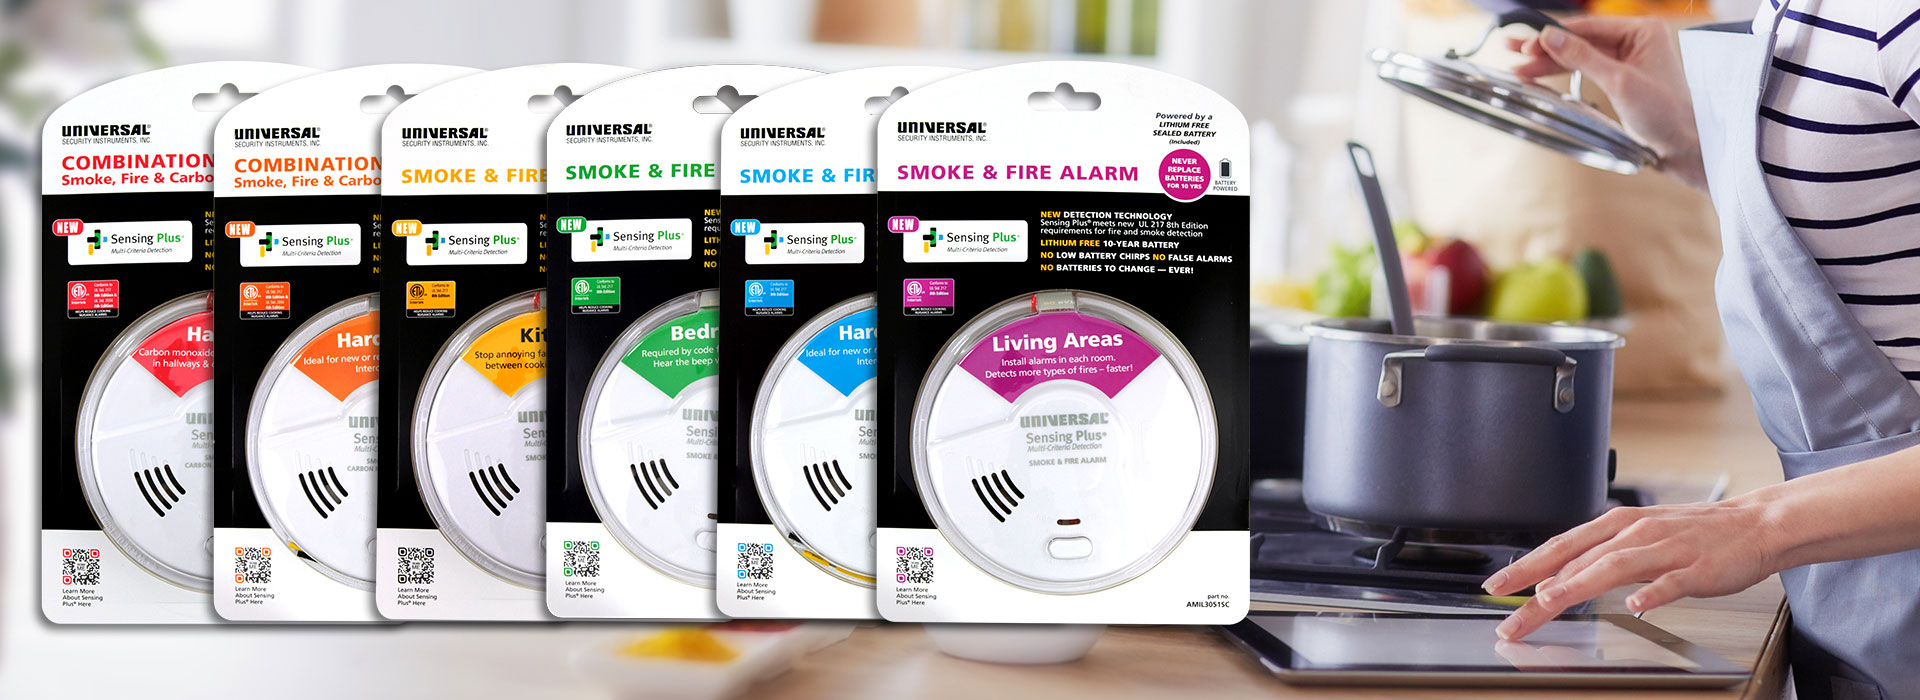 USI sensing plus smoke alarms